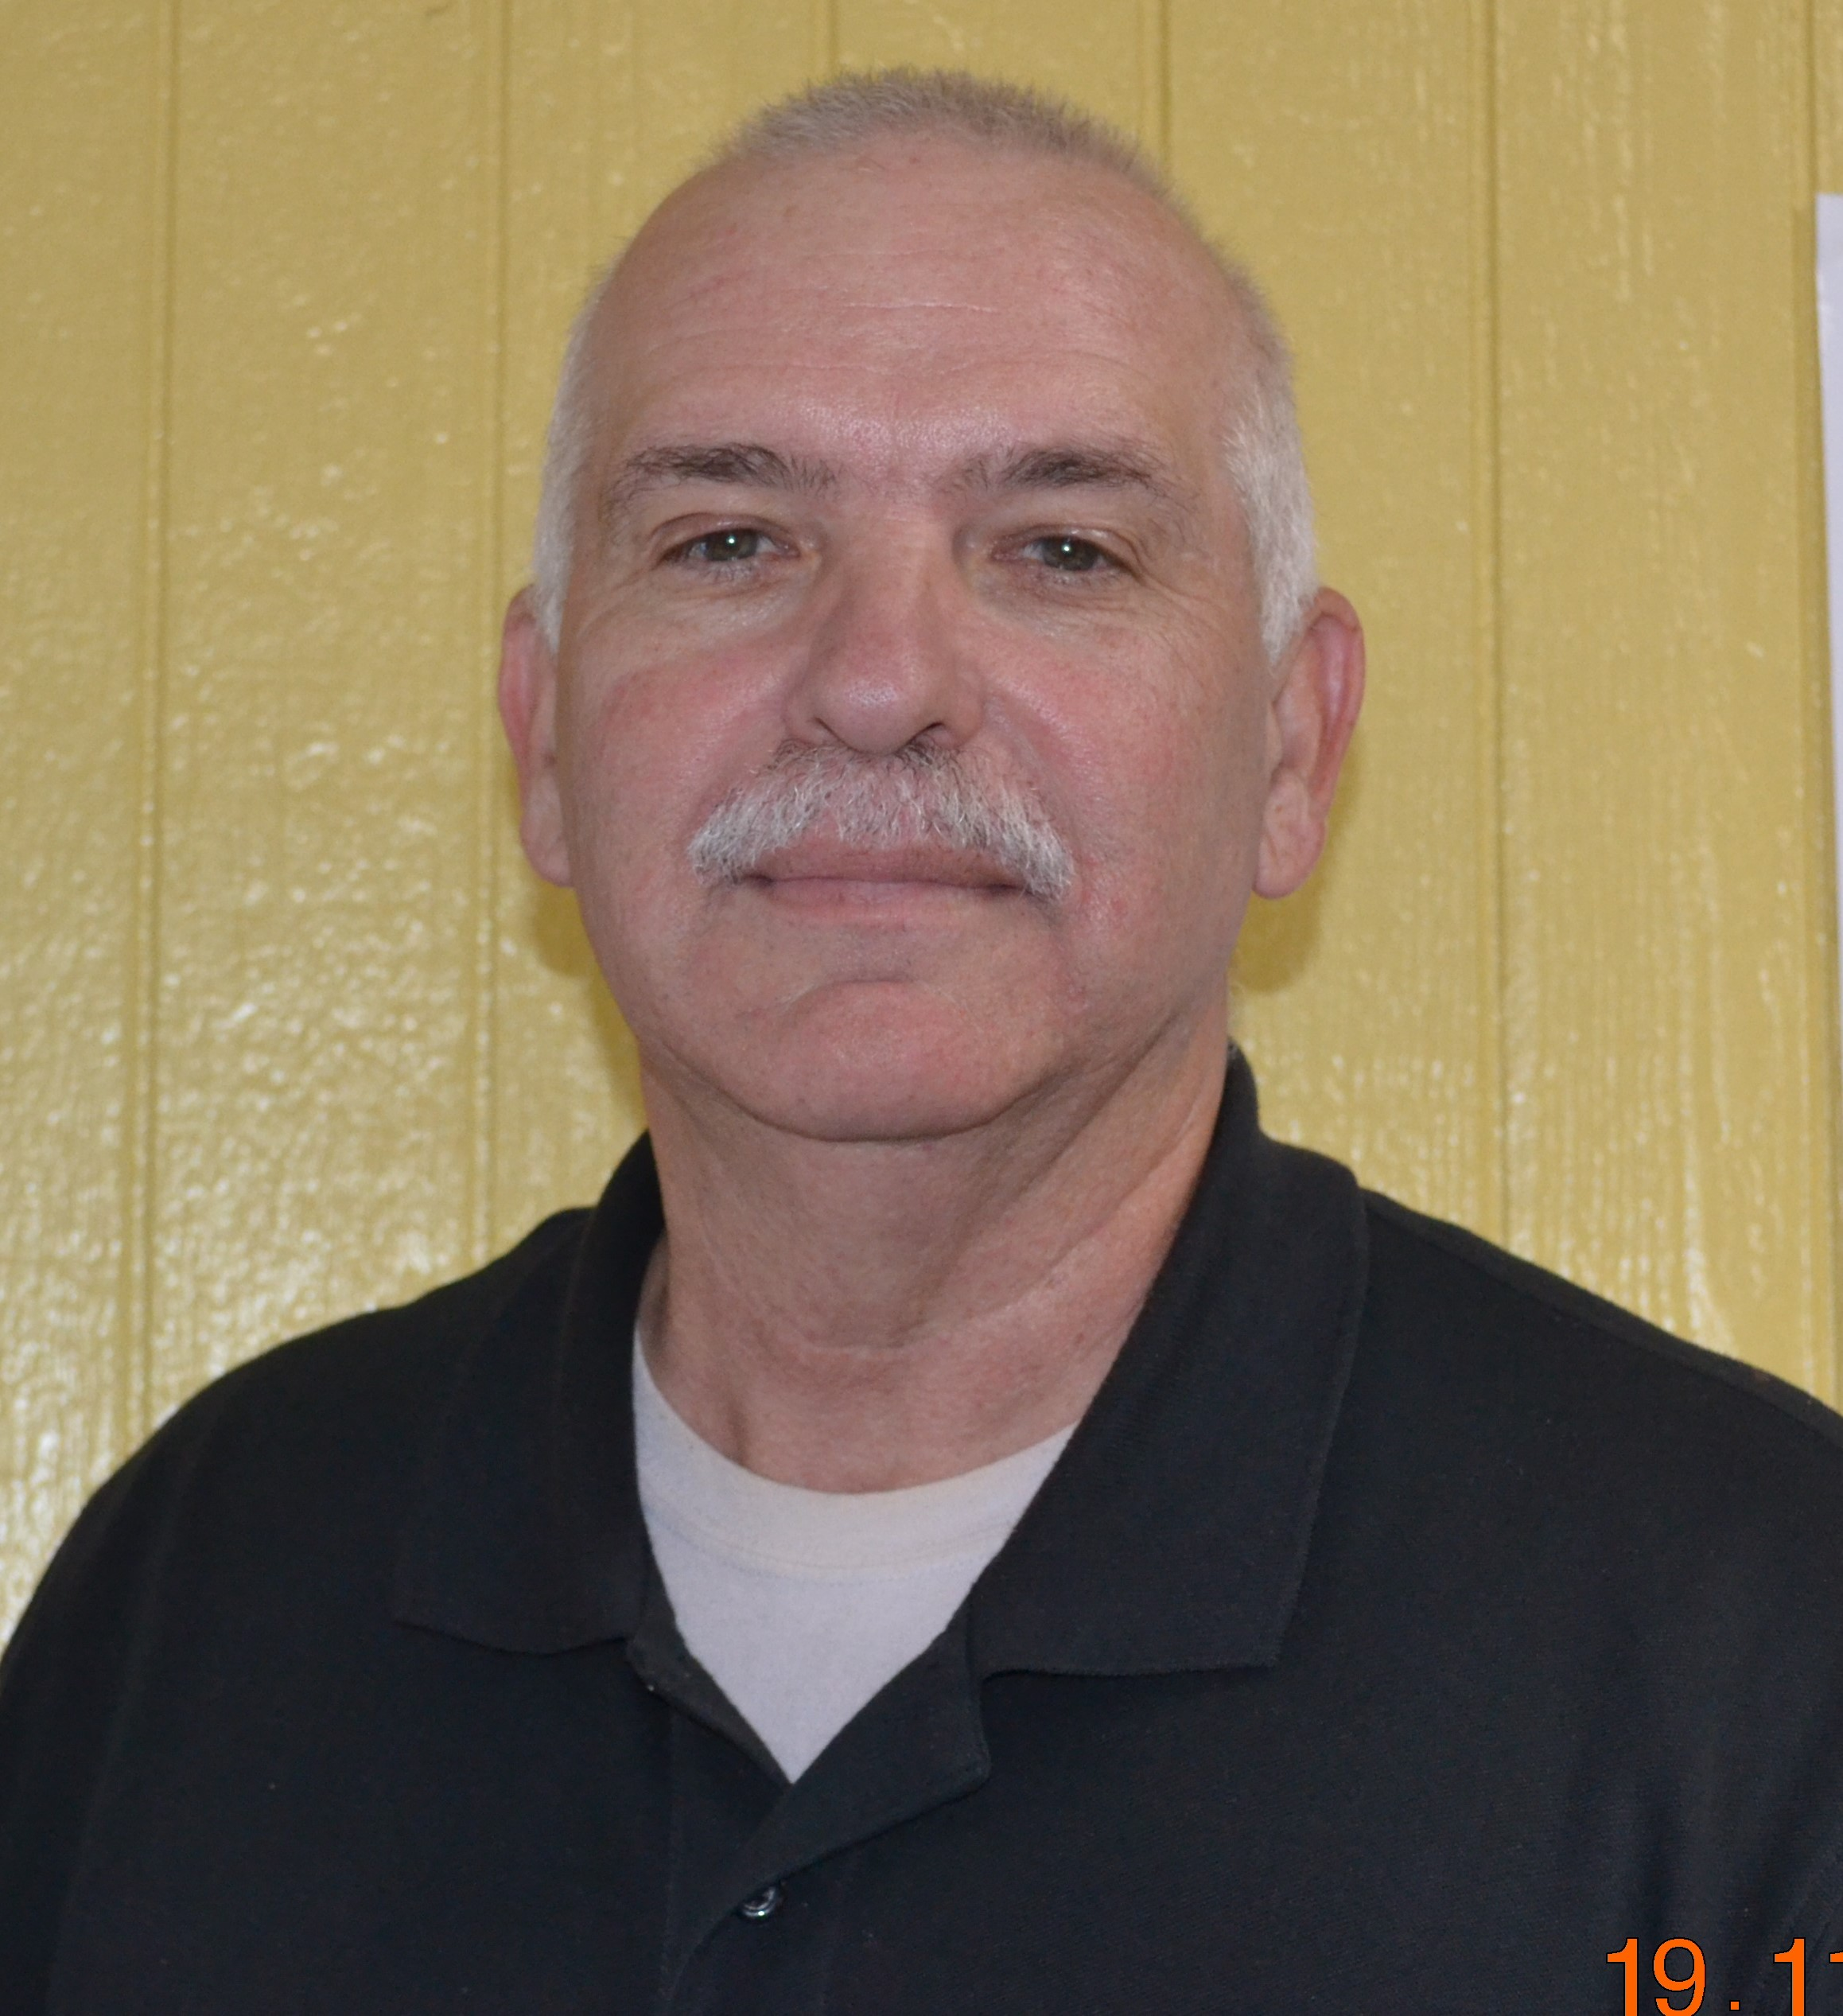 JIM GILLHAM; Retired Game Warden from Oklahoma Department of Wildlife